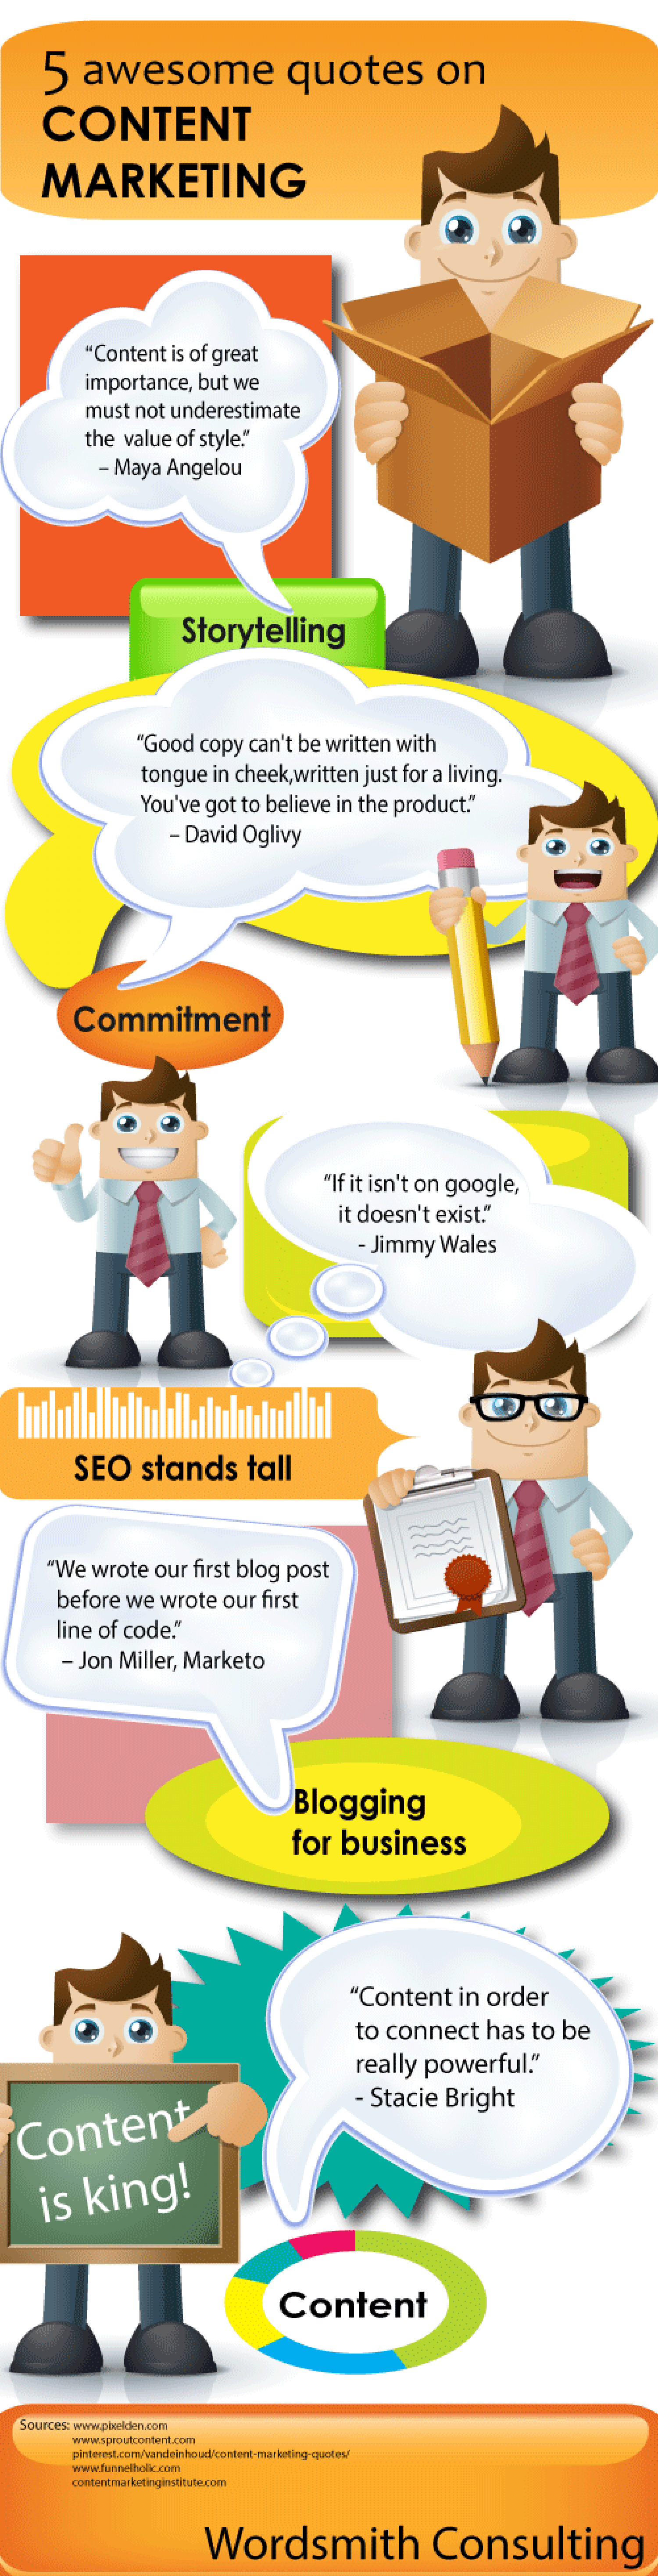 5 awesome quotes about content marketing Infographic